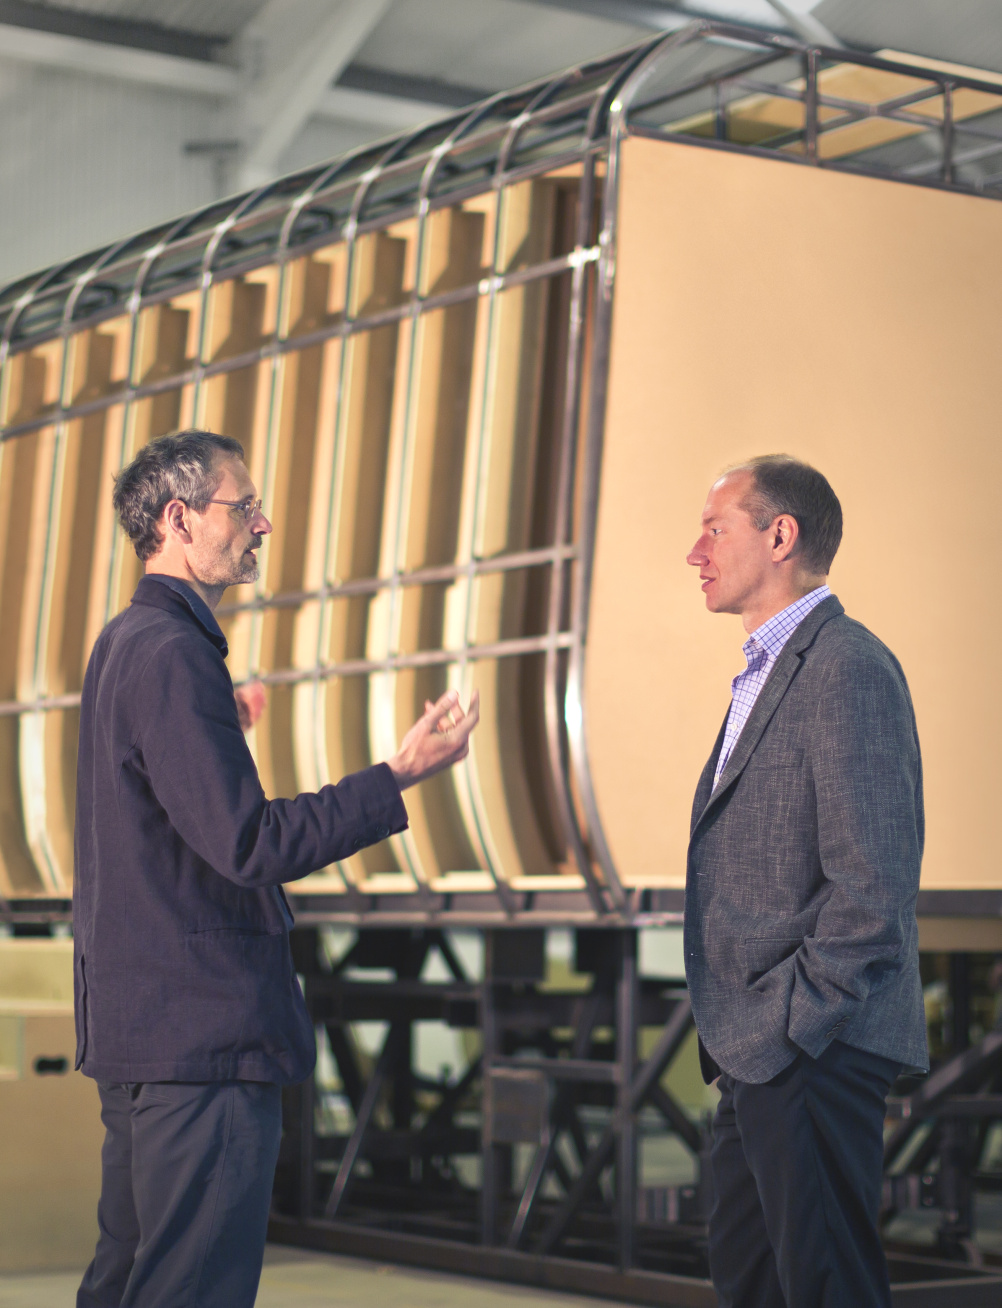 DCA's technical director Rob Bassil (right) and interior design project manager and transportation sector manager Paul Rutter with the full size mock up currently under construction at DCA's Warwick premises.